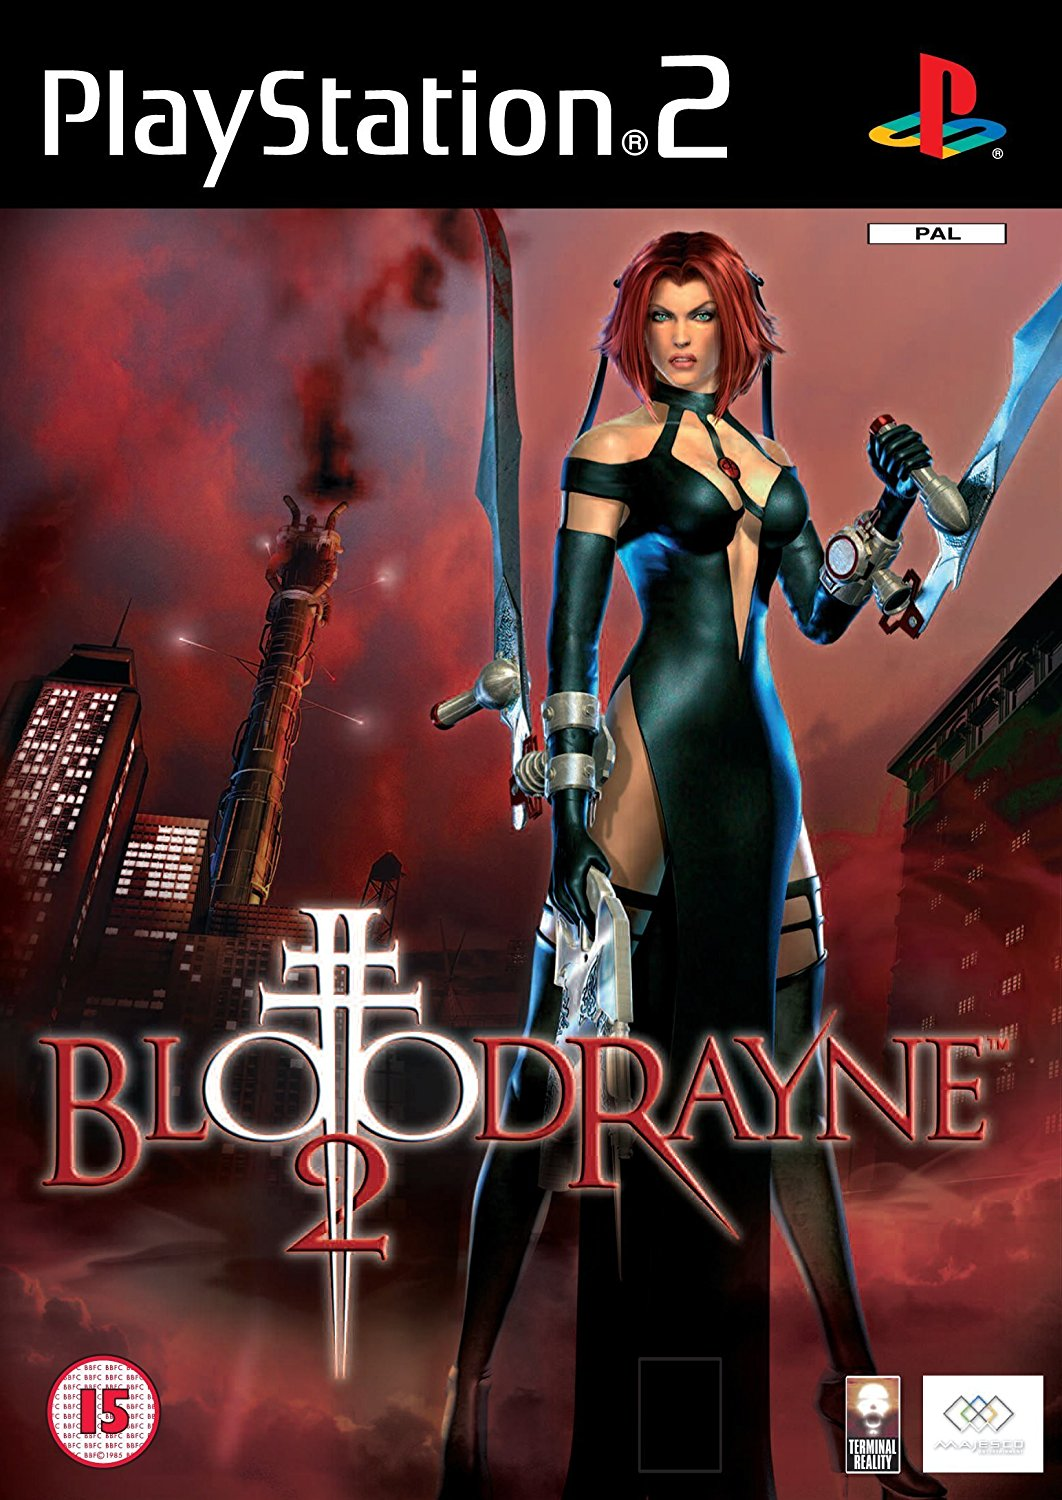 bloodrayne 2 ps2 iso